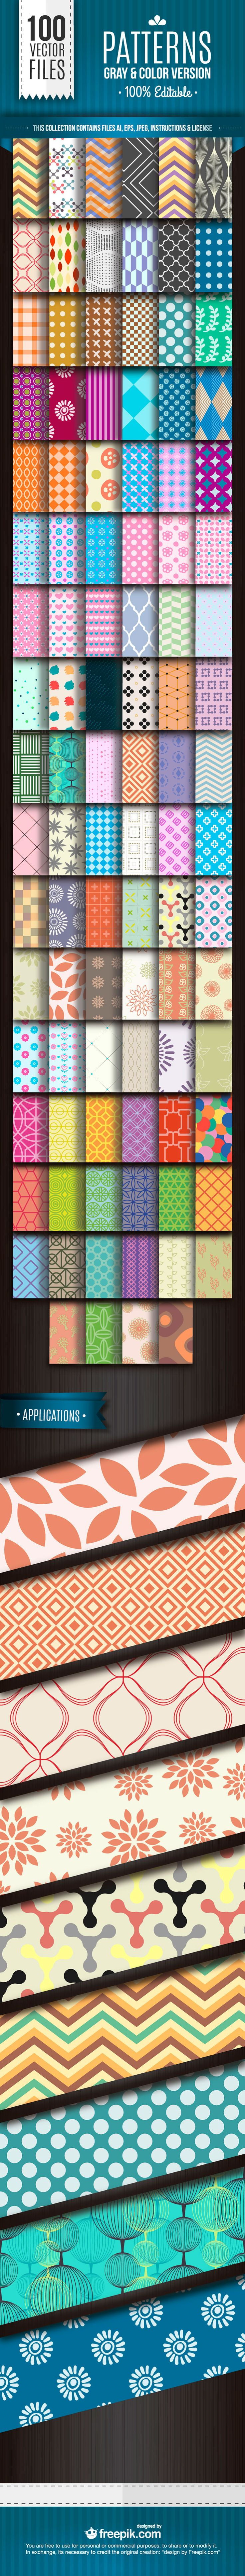 Free download: 100 repeating vector patterns from freepik.com photo